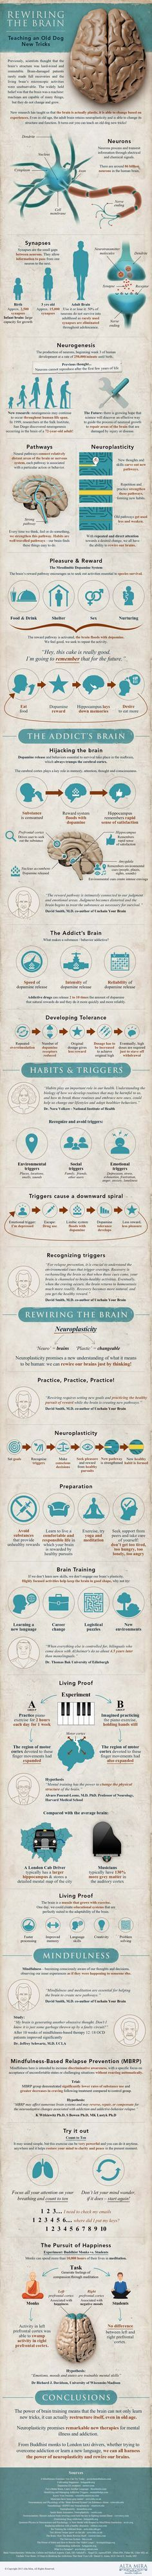 This is a great infographic about how to break bad habits, create good habits, and even control our emotions -- Rewiring The Brain